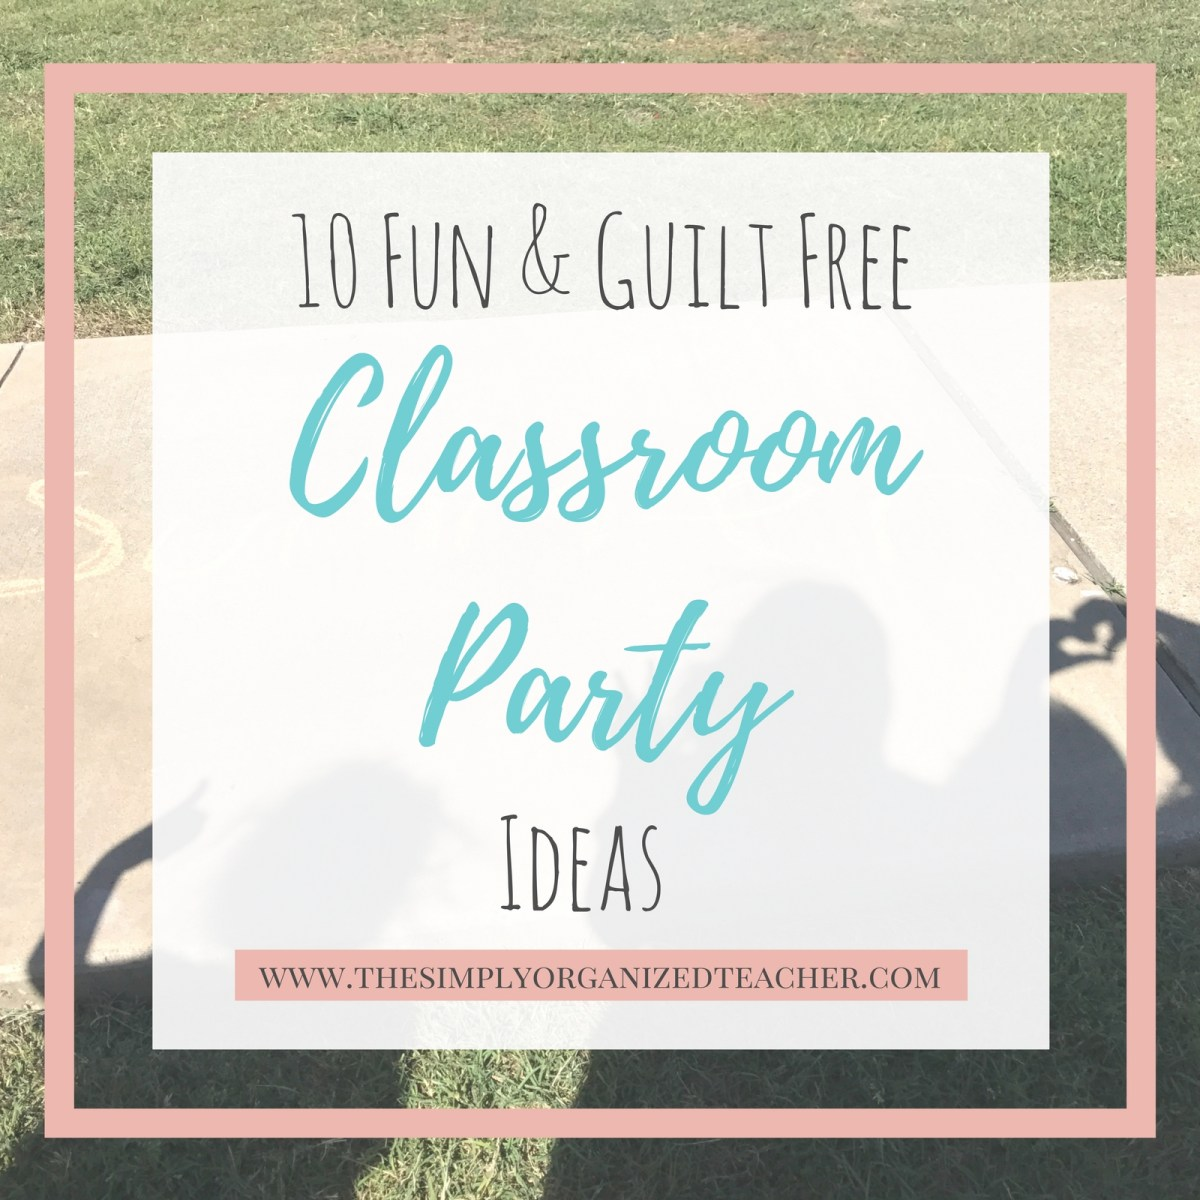 10 Fun and Guilt Free Classroom Party Ideas